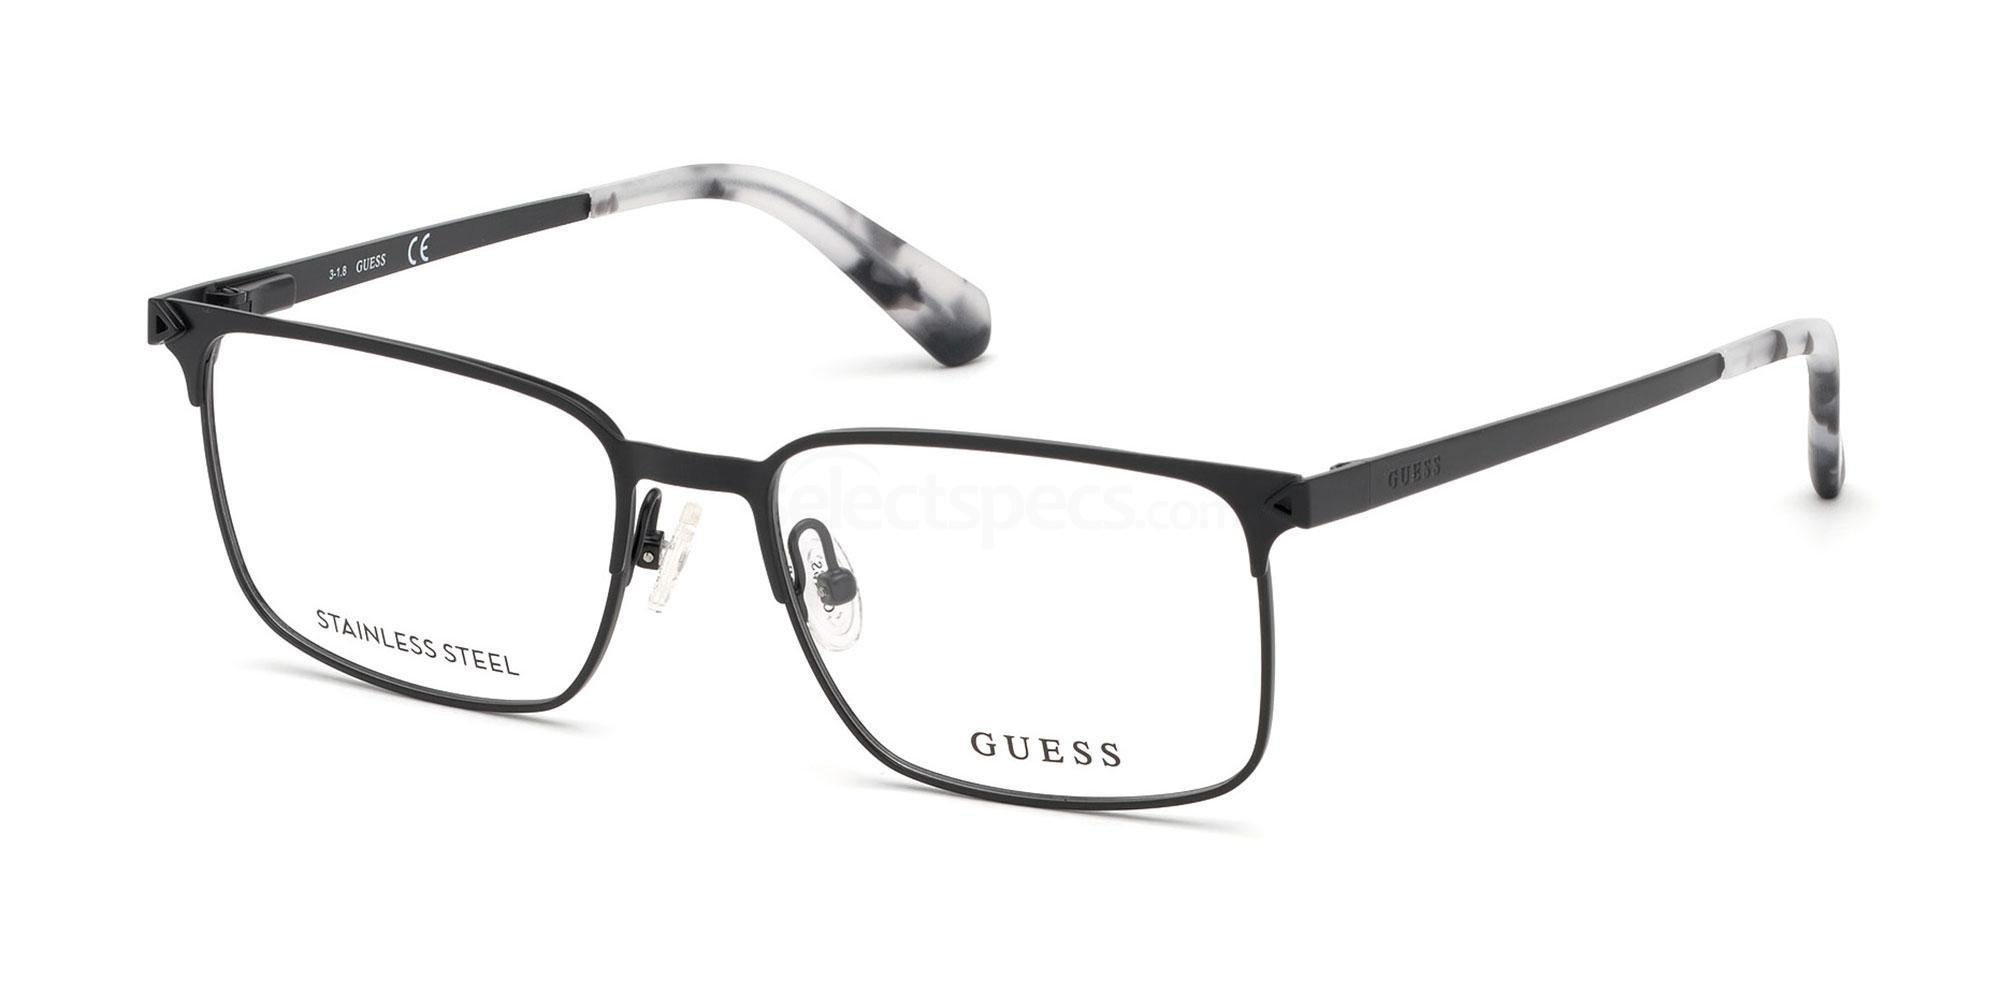 005 GU1965 Glasses, Guess